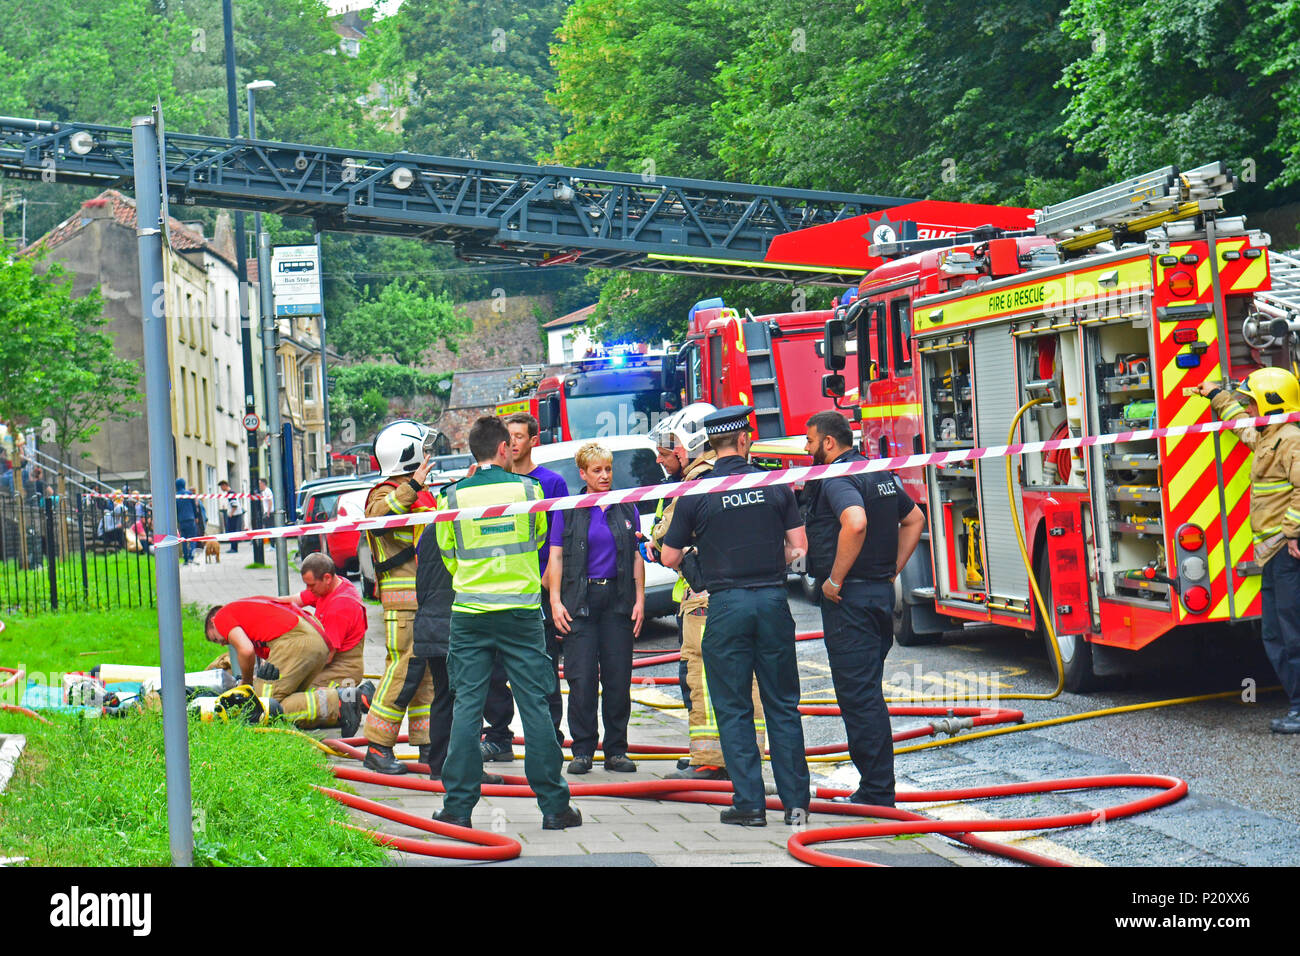 Bristol, UK. Block of flats on fire seen with smoke pouring out at Brandon House on  Jacob's Wells Road. Emergency Services arrived approx 13.00 hrs today wednesday 13th June. Road closed in both direction to all traffic. Credit: Robert Timoney/Alamy Live News - Stock Image